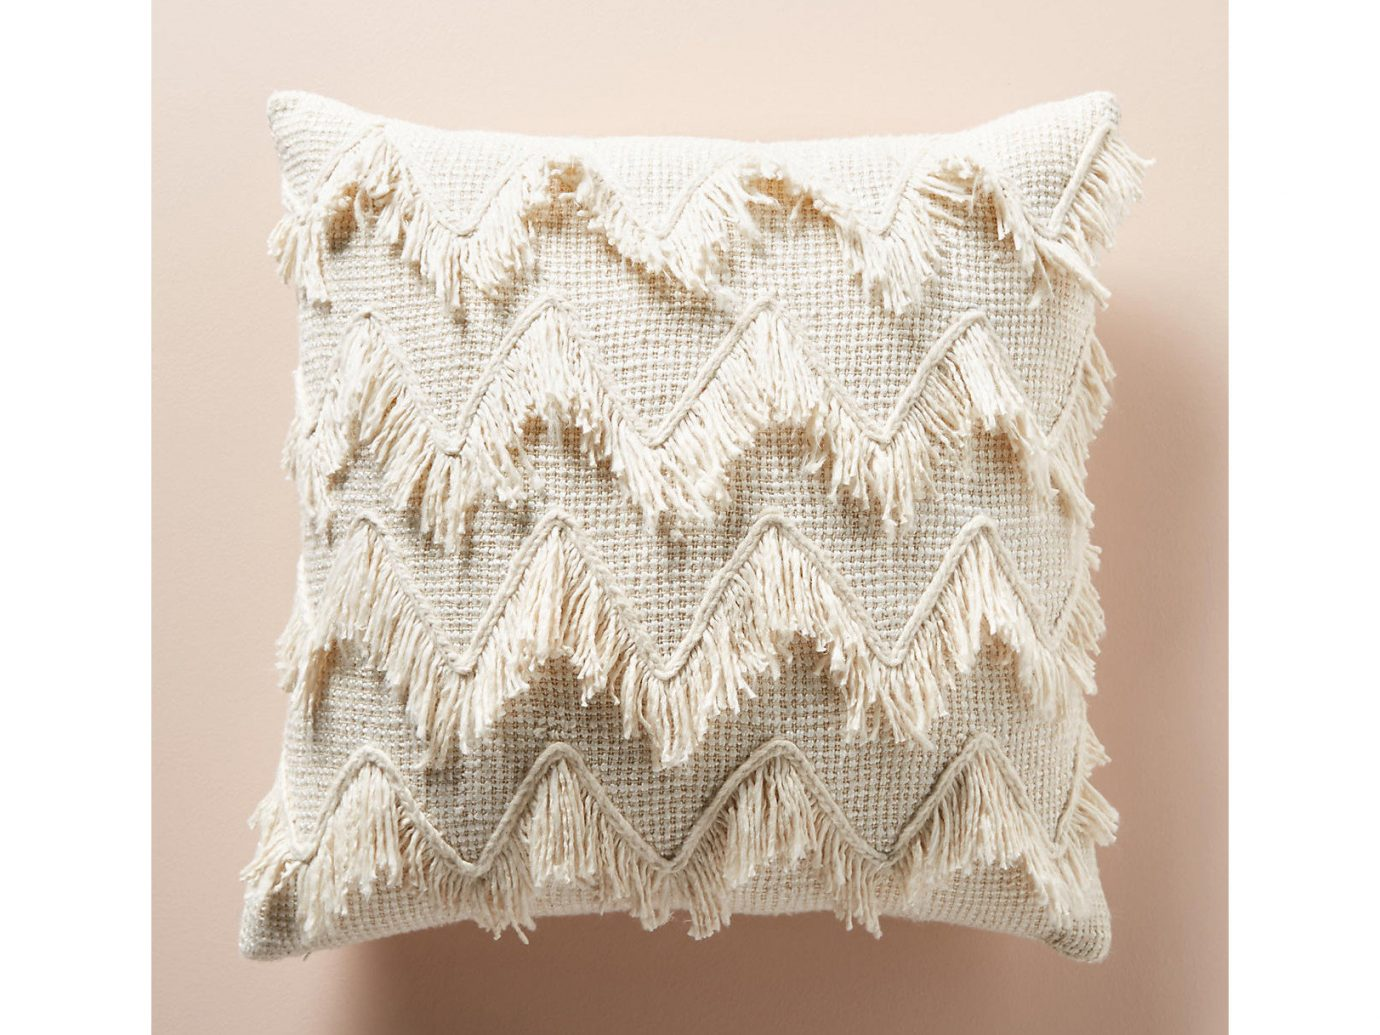 Amsterdam Style + Design The Netherlands Travel Shop throw pillow cushion pillow lace linens fabric